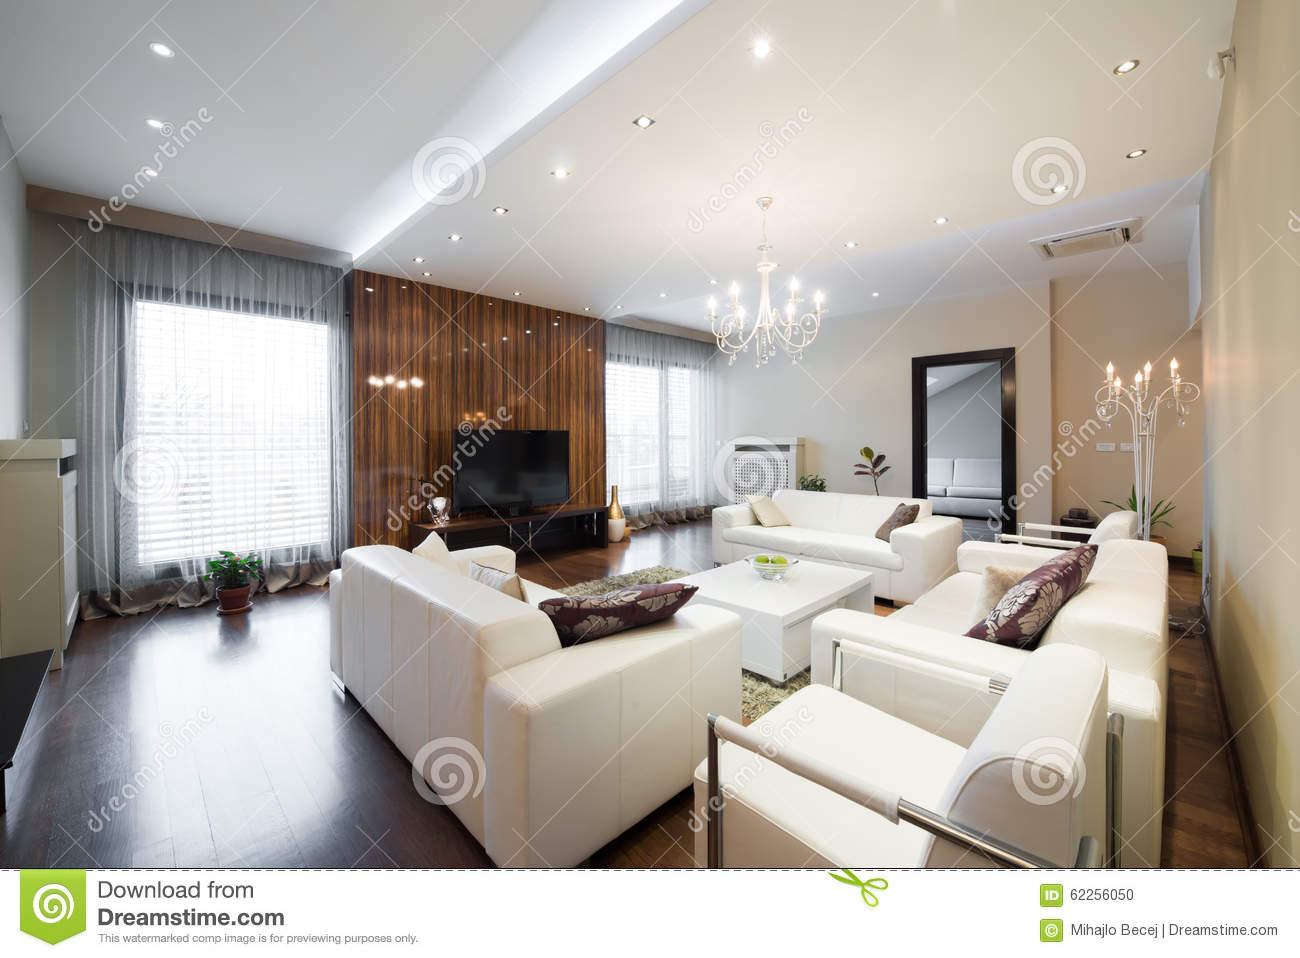 Interior Of A Modern Spacious Living Room Stock Photo - Image of ...